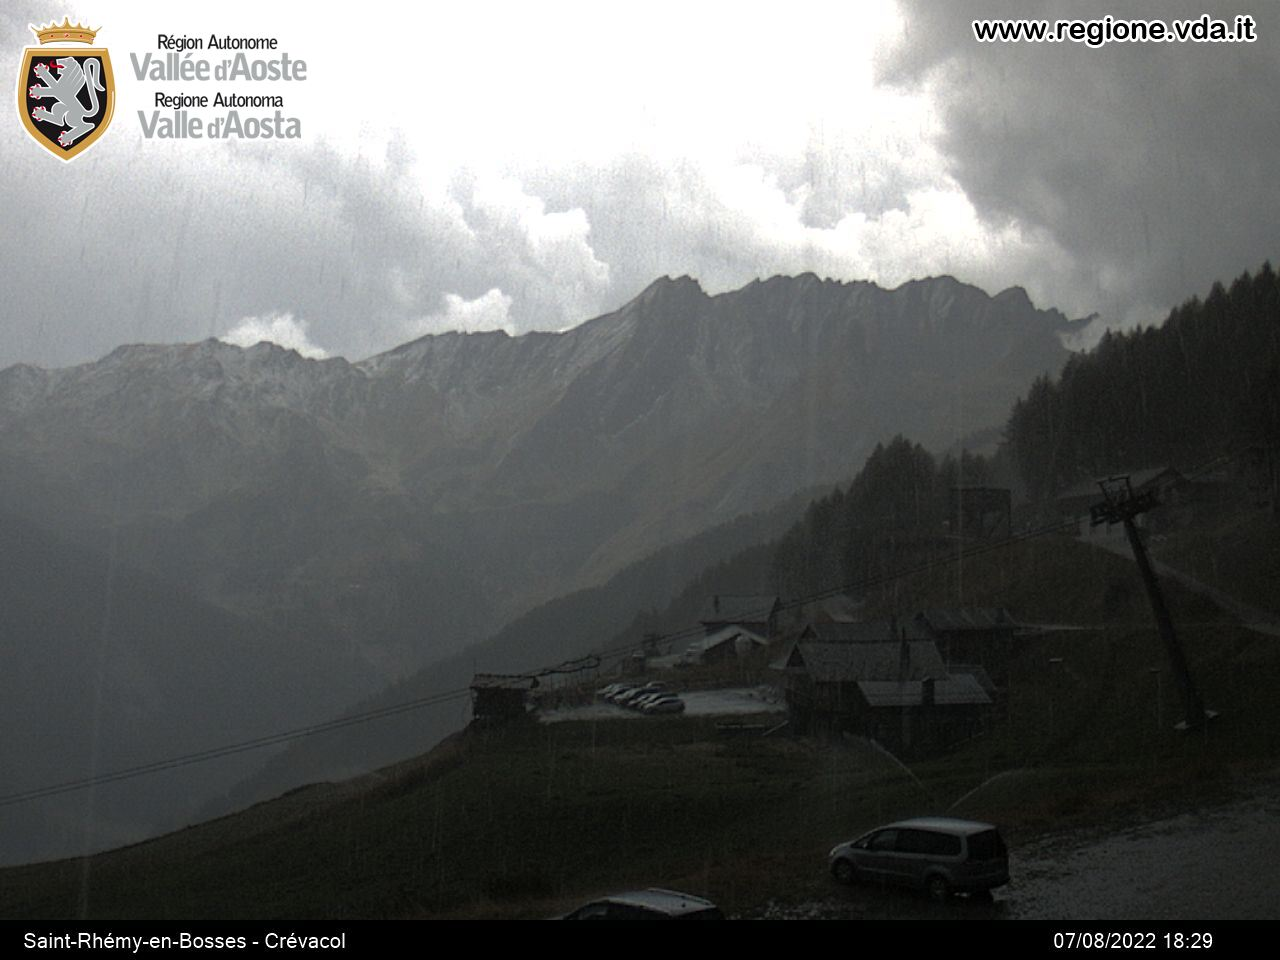 Webcam Saint-Rhemy en Bosses & Crevacol